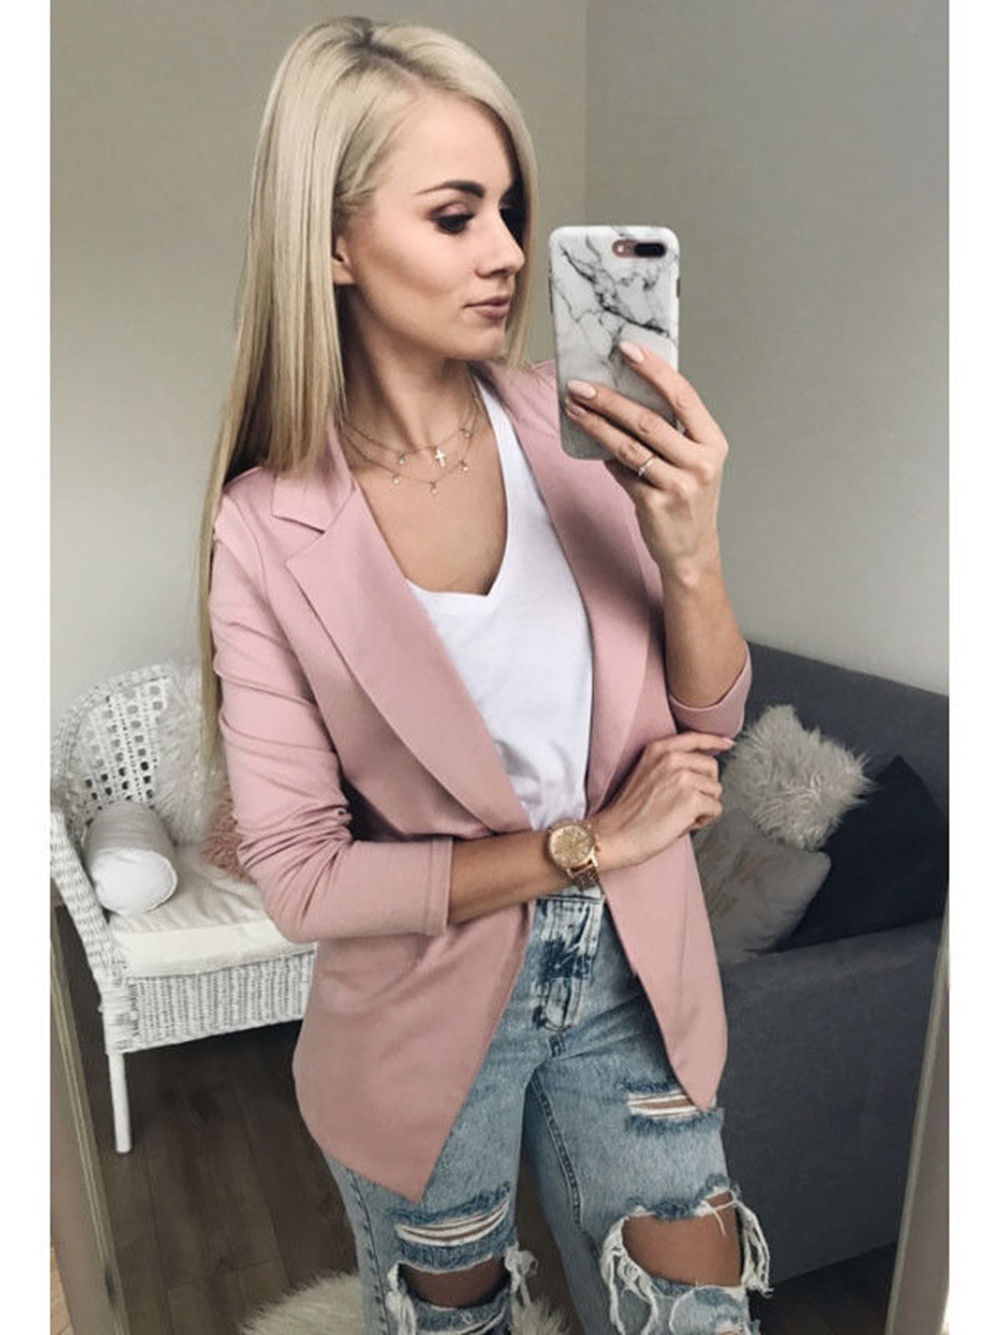 Thefound 2019 New Fashion Women Casual Suit Coat Business Blazer Long Sleeve Jacket Outwear